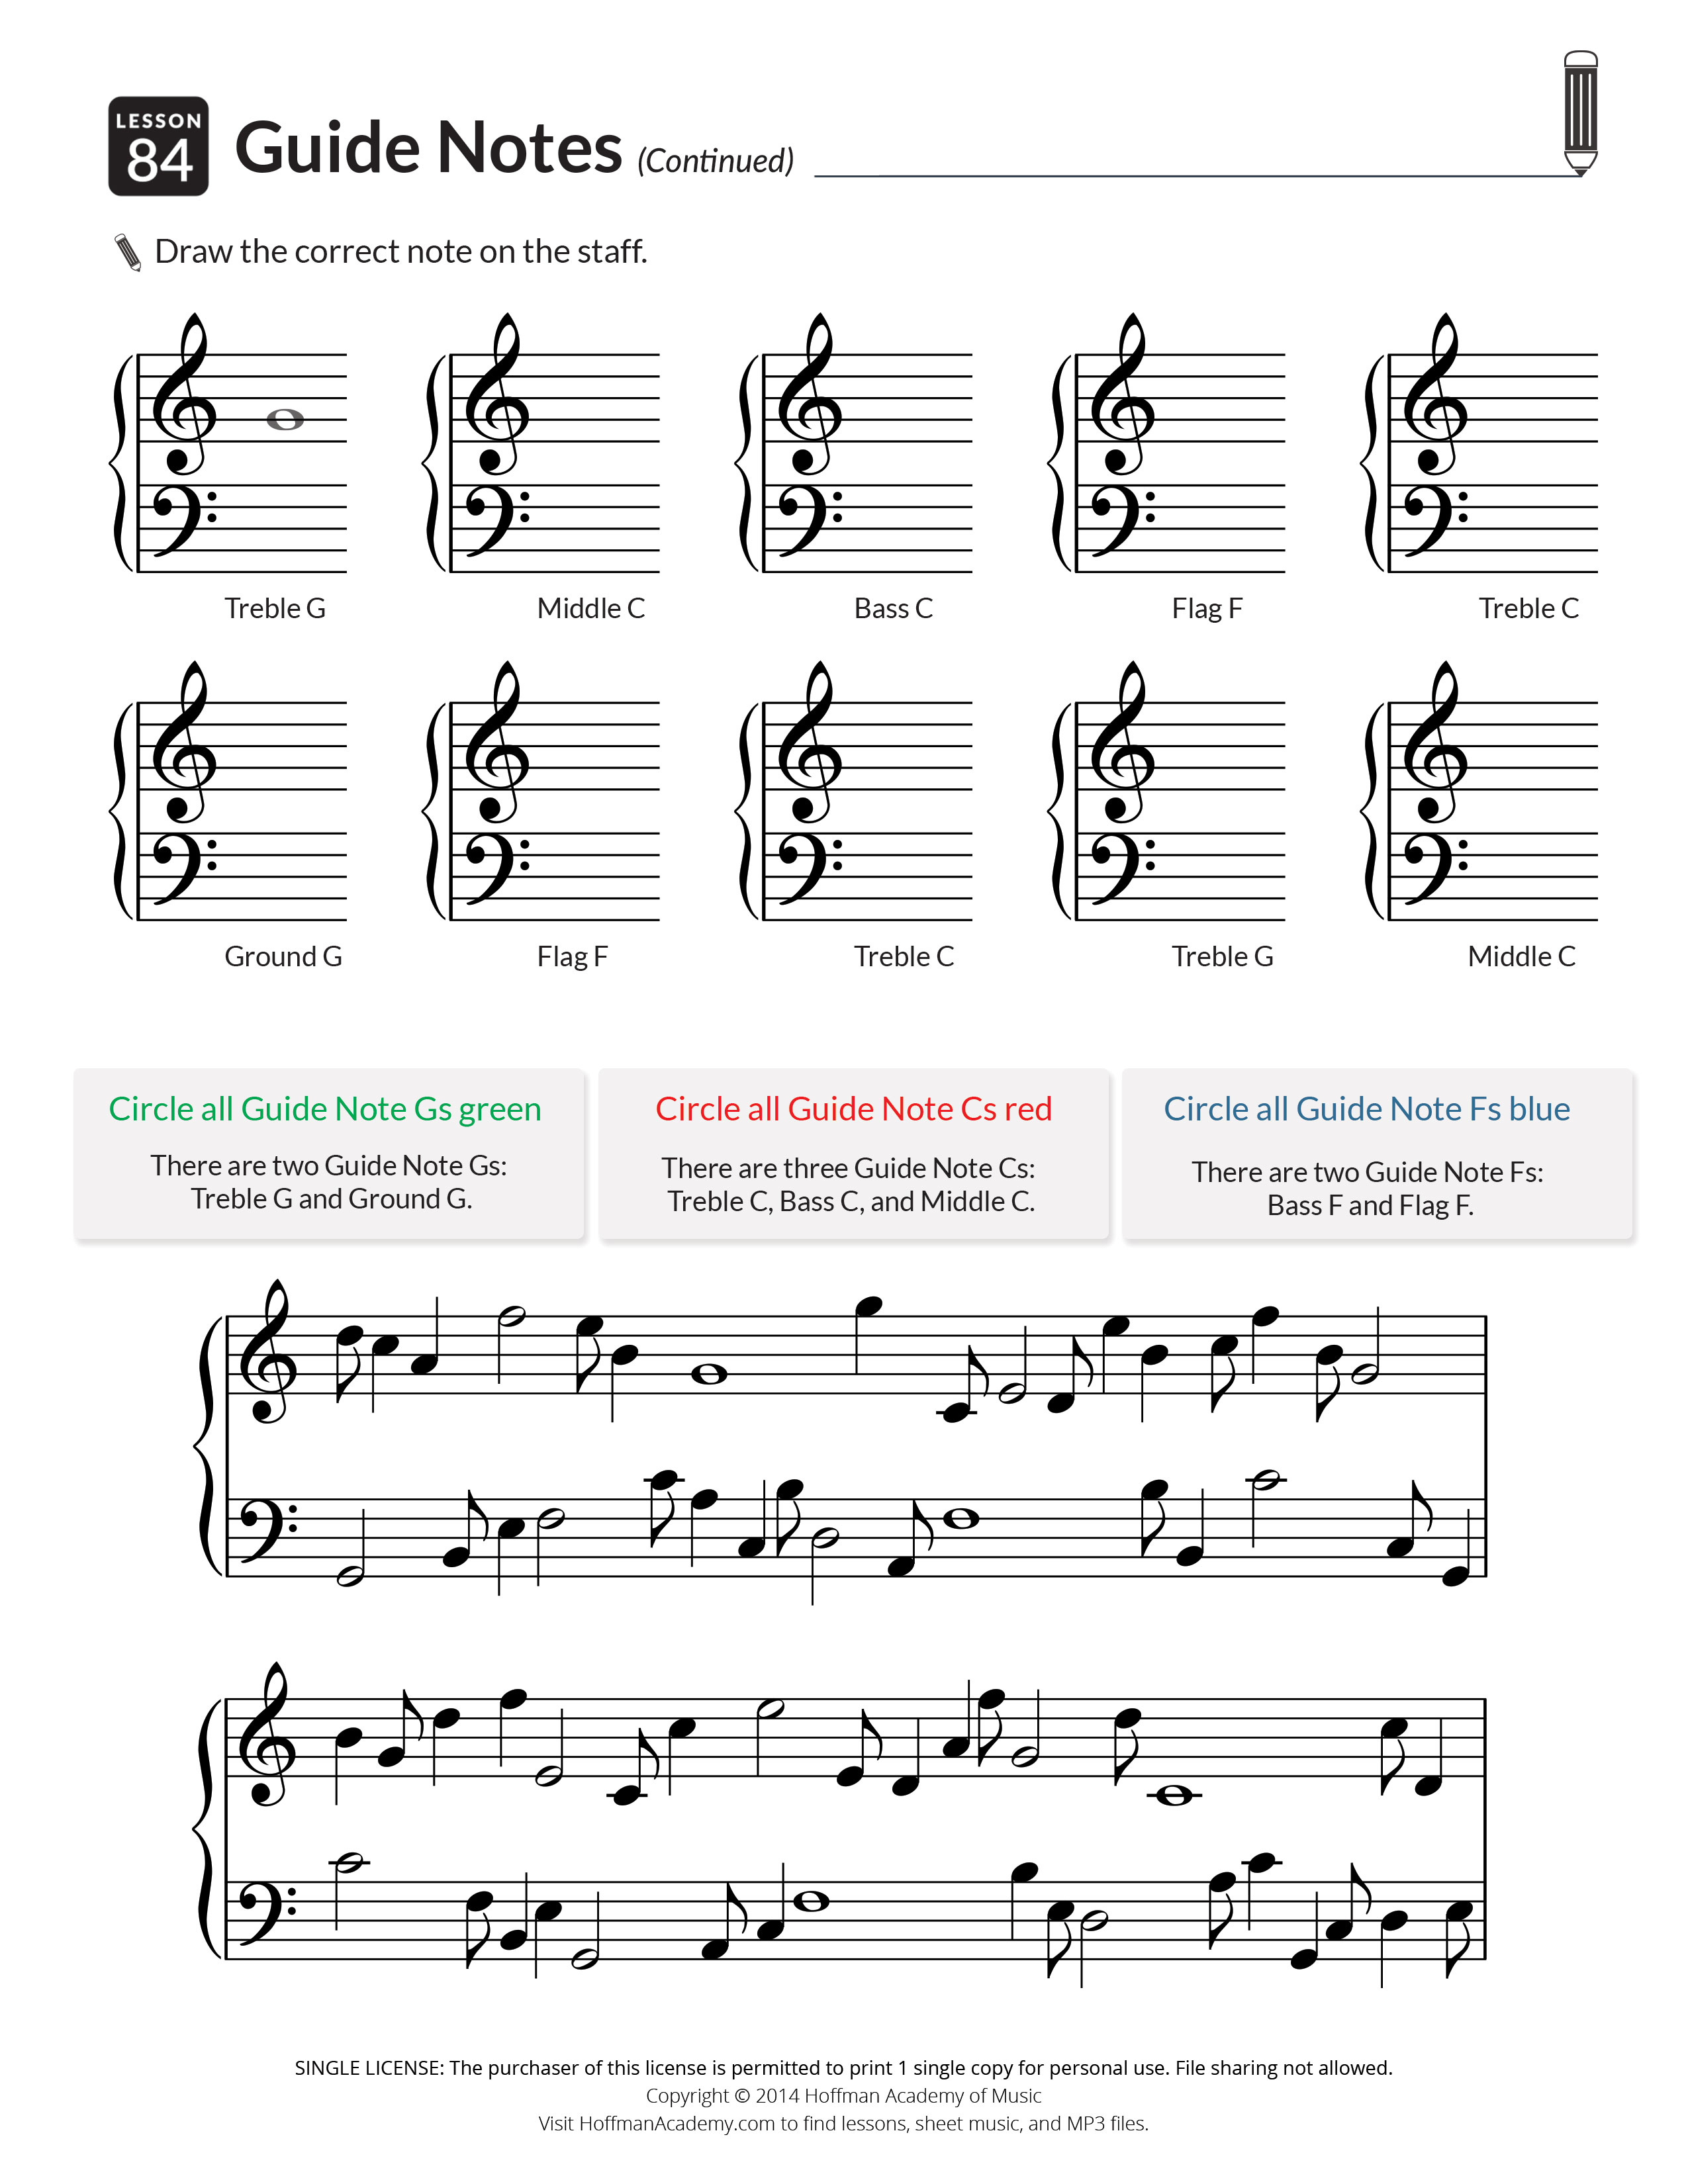 Printables & Audio For Piano Units 1-5: Lessons 1-100 - Hoffman | Beginner Piano Worksheets Printable Free